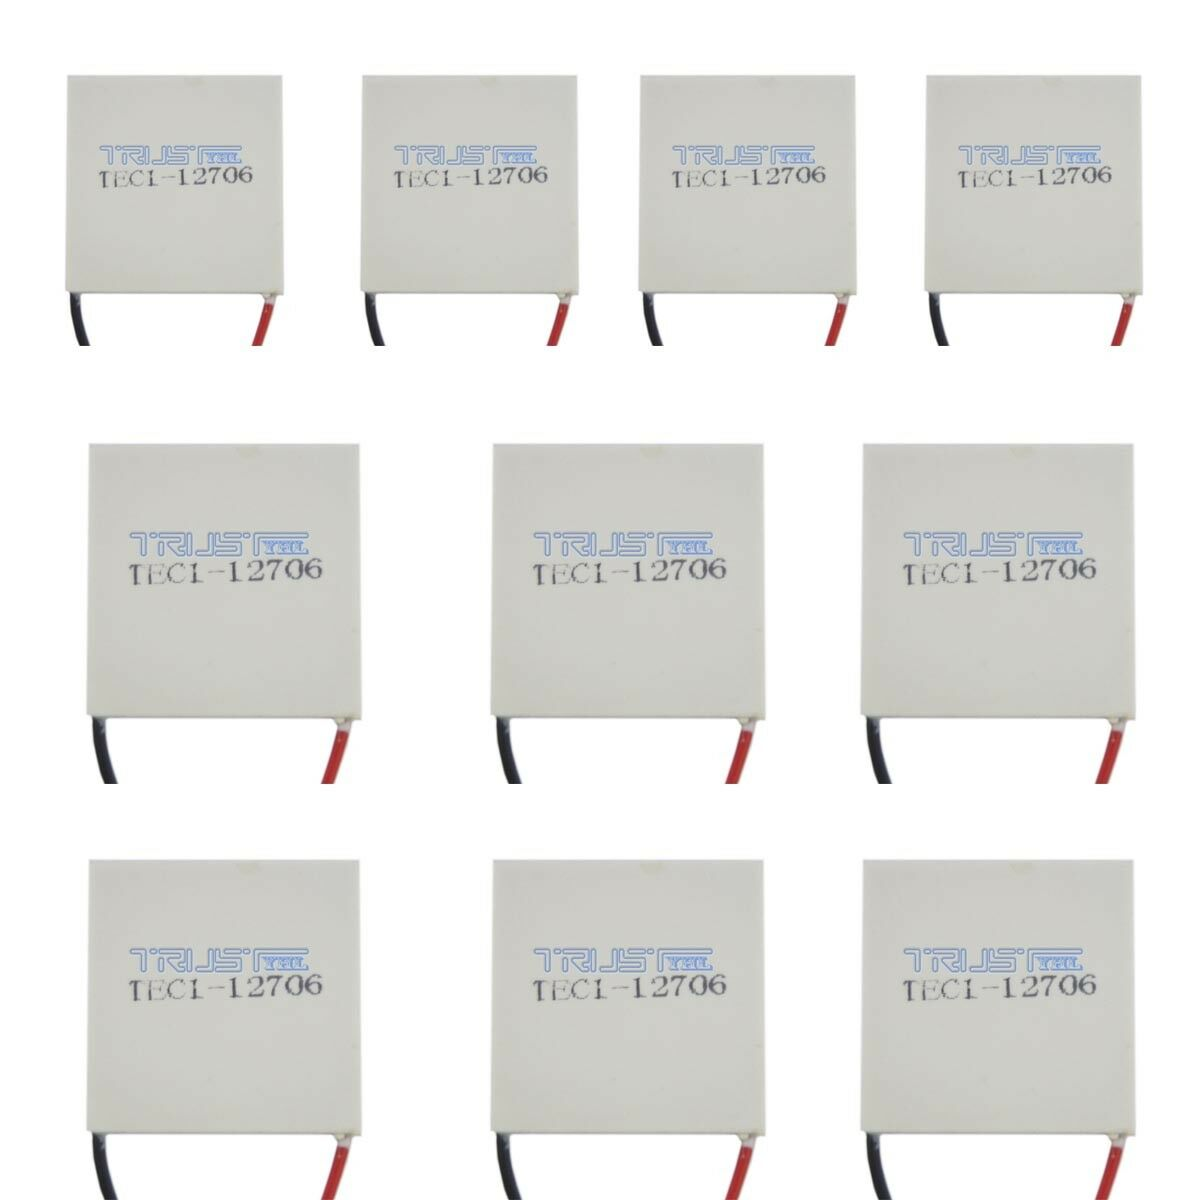 10Pcs TEC1-12706 Thermoelectric Cooler Heat Sink Cooling Peltier Plate...